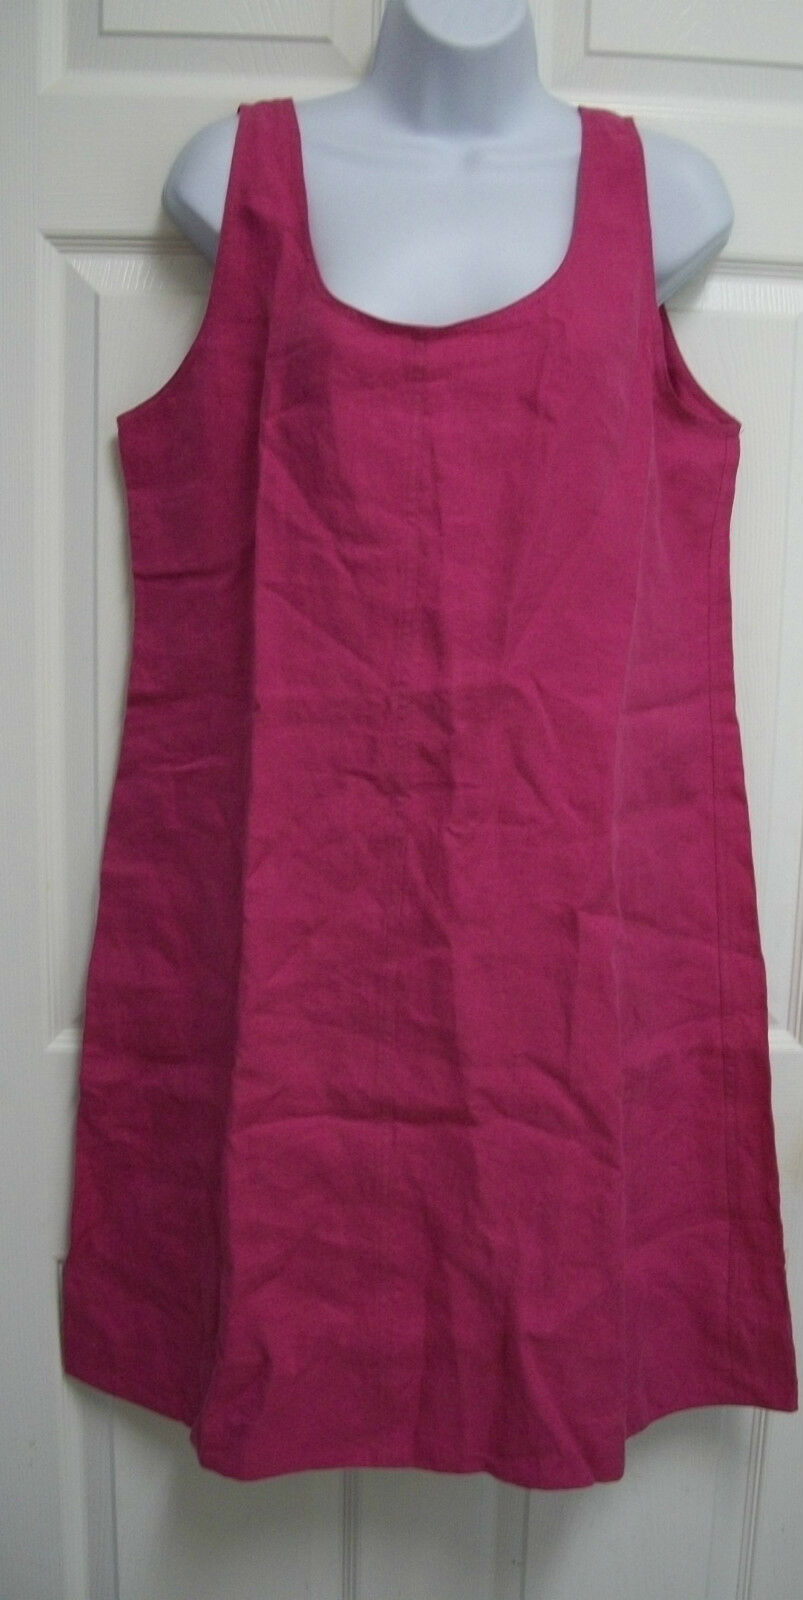 NEW EILEEN FISHER PURPLE PINK WASHED LINEN TWILL LOOSE SLEEVELESS SHIFT DRESS L